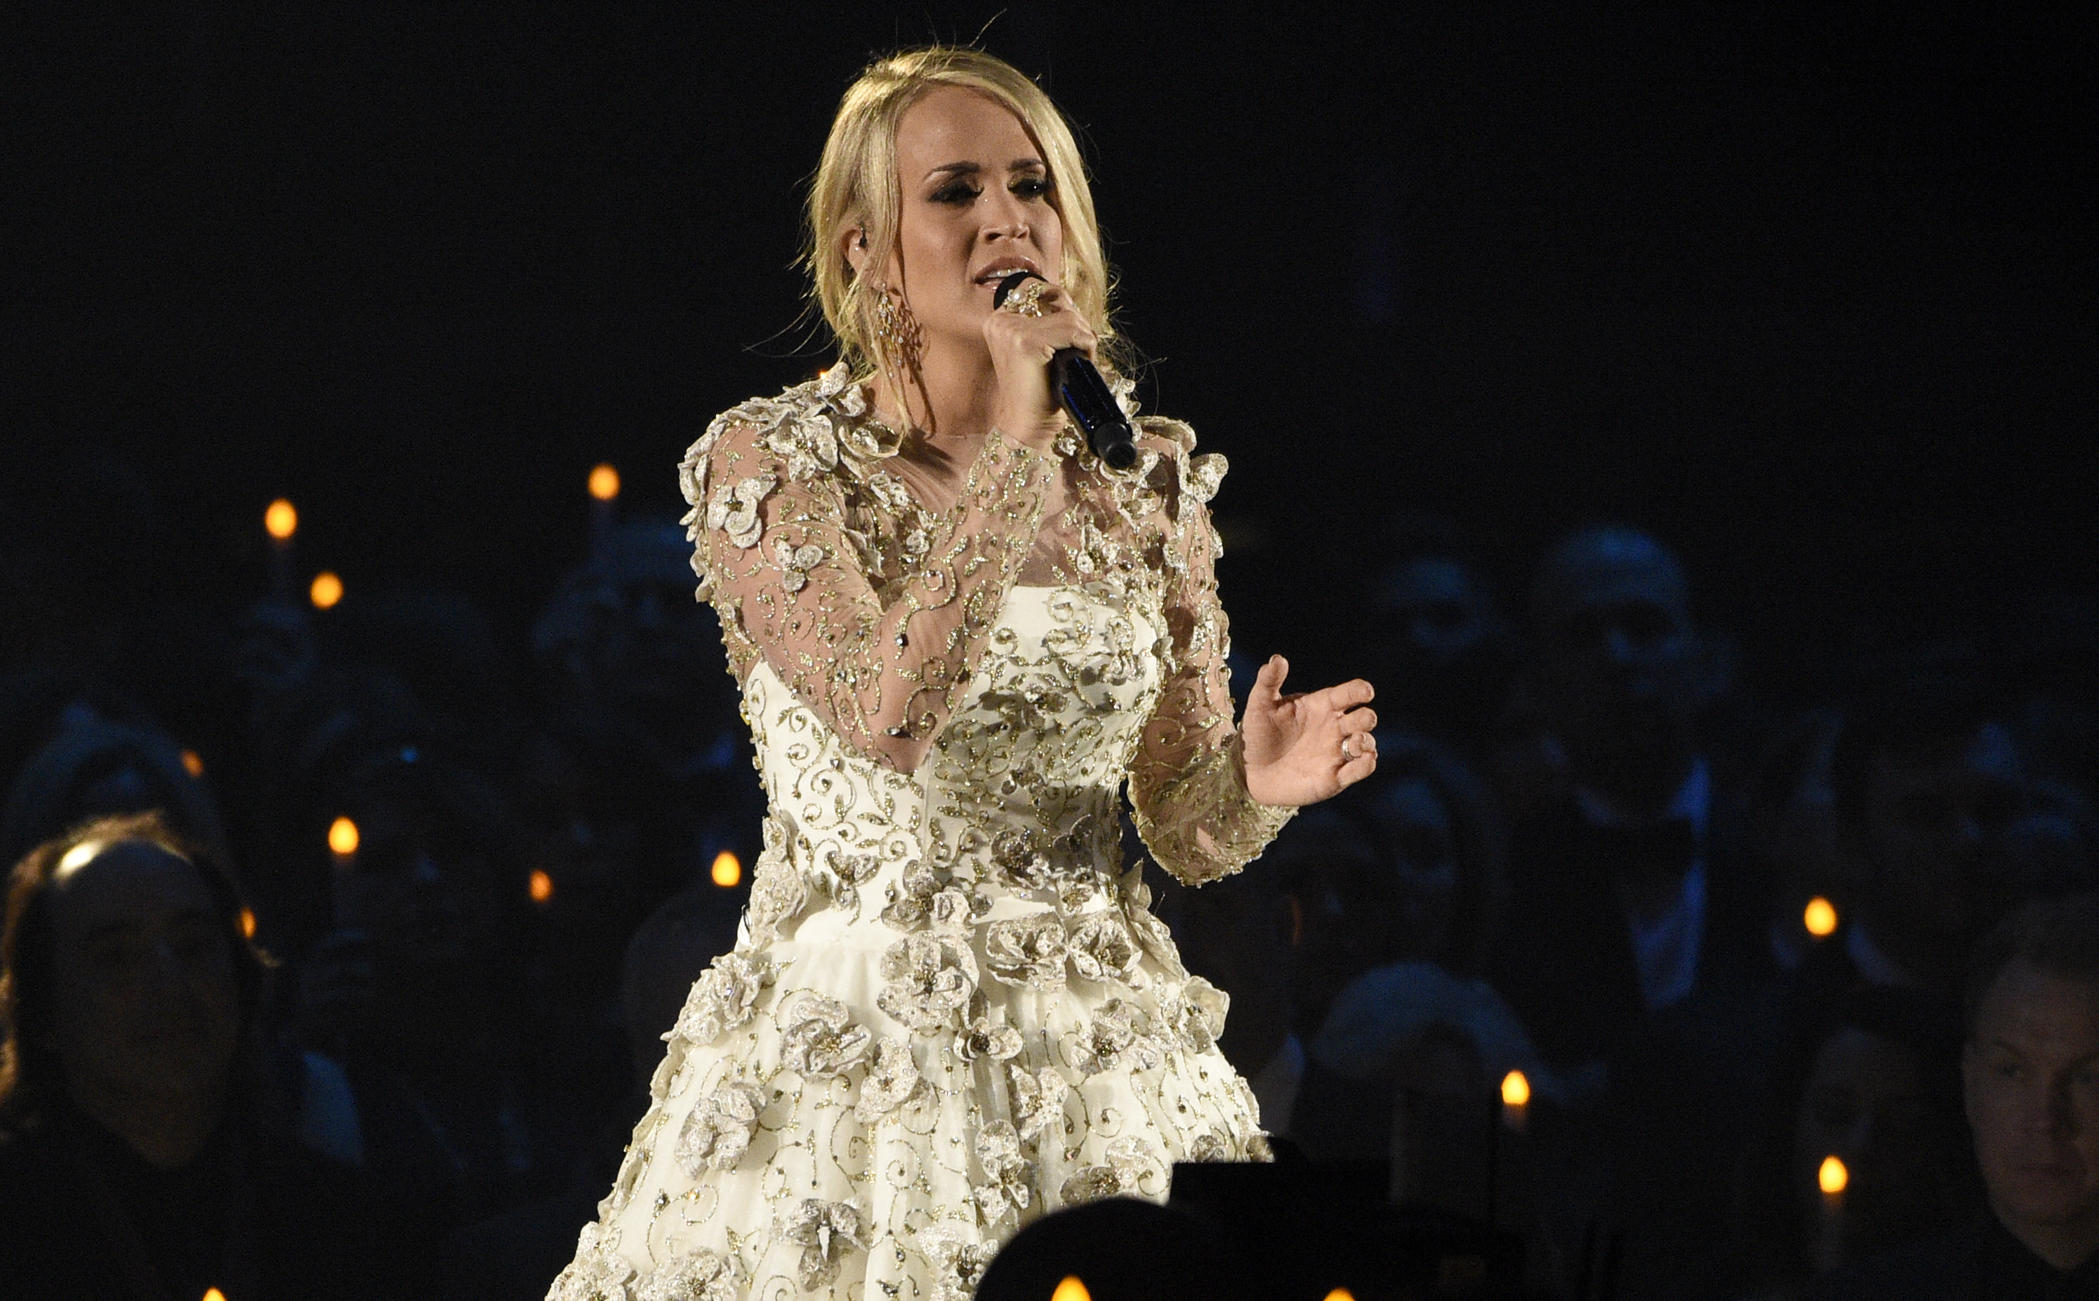 42. Carrie Underwood